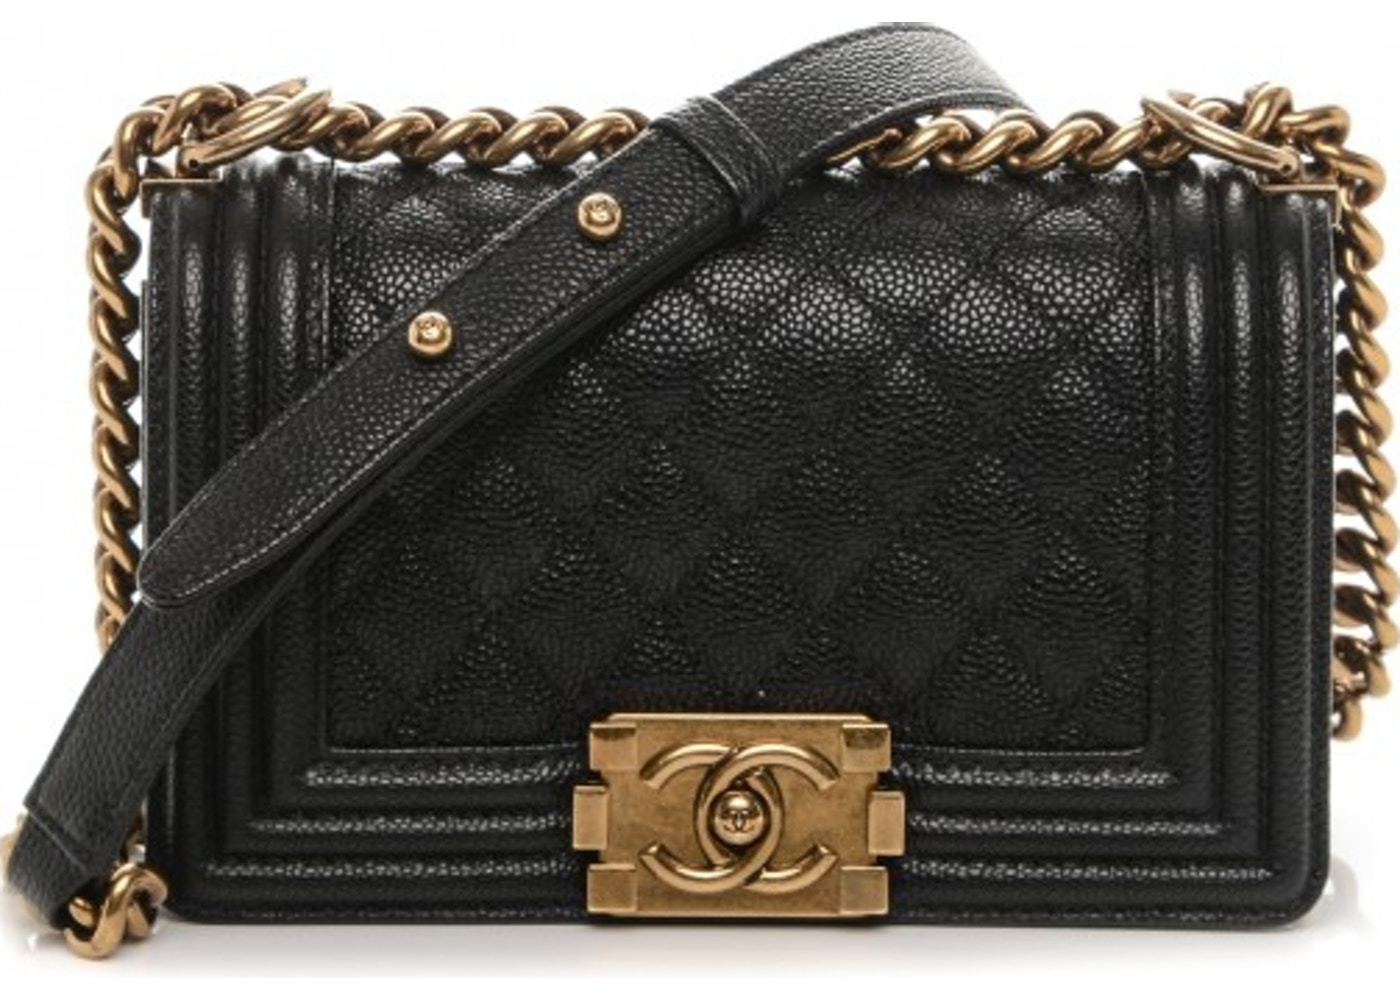 964b5fa55a9cfc Chanel Boy Flap Quilted Diamond Caviar Small Black. Quilted Diamond Caviar  Small Black